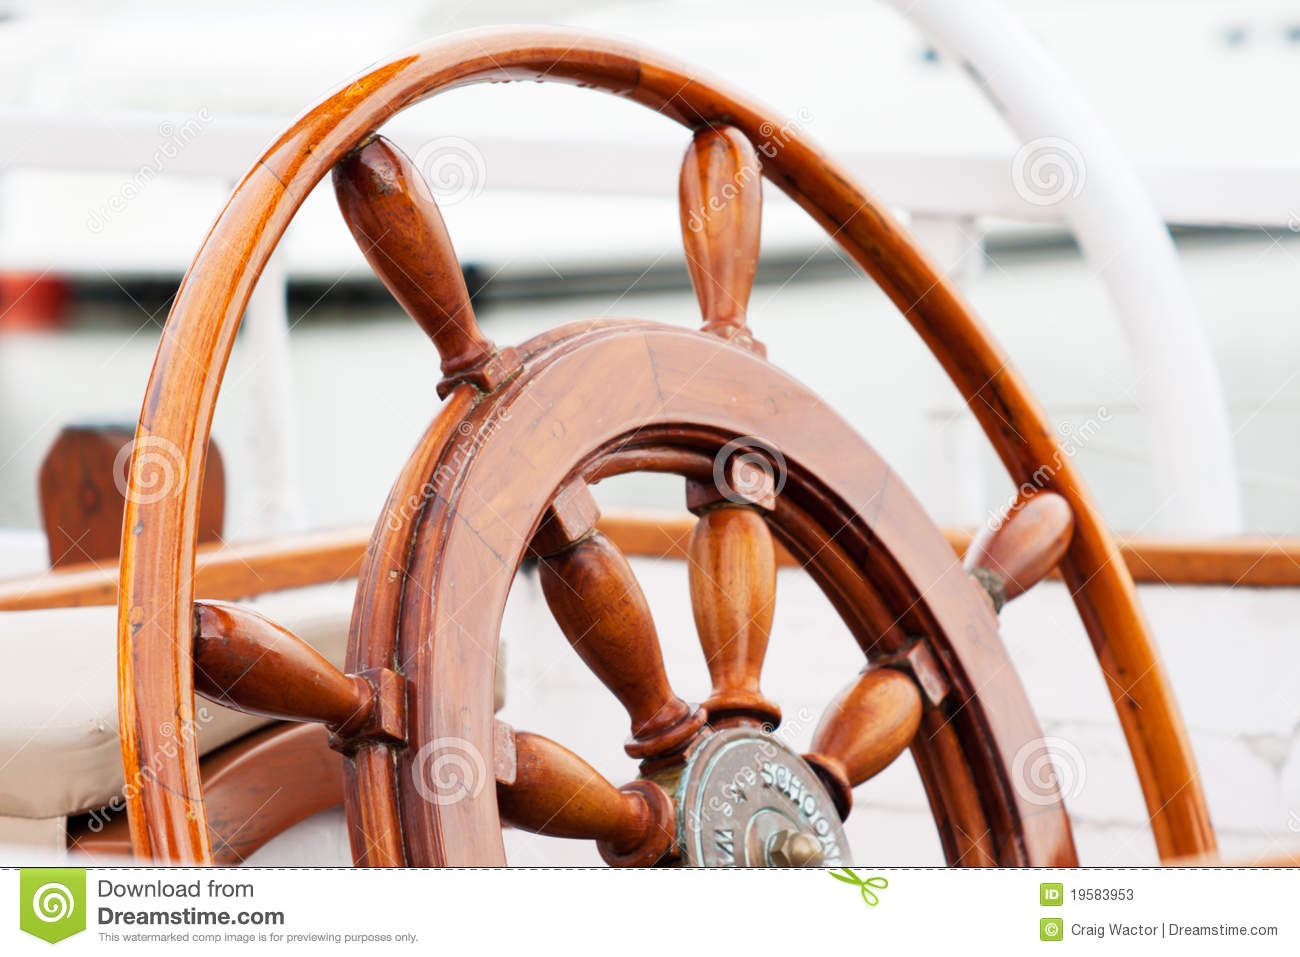 Old wooden boat wheel stock image. Image of wooden, steering - 19583953